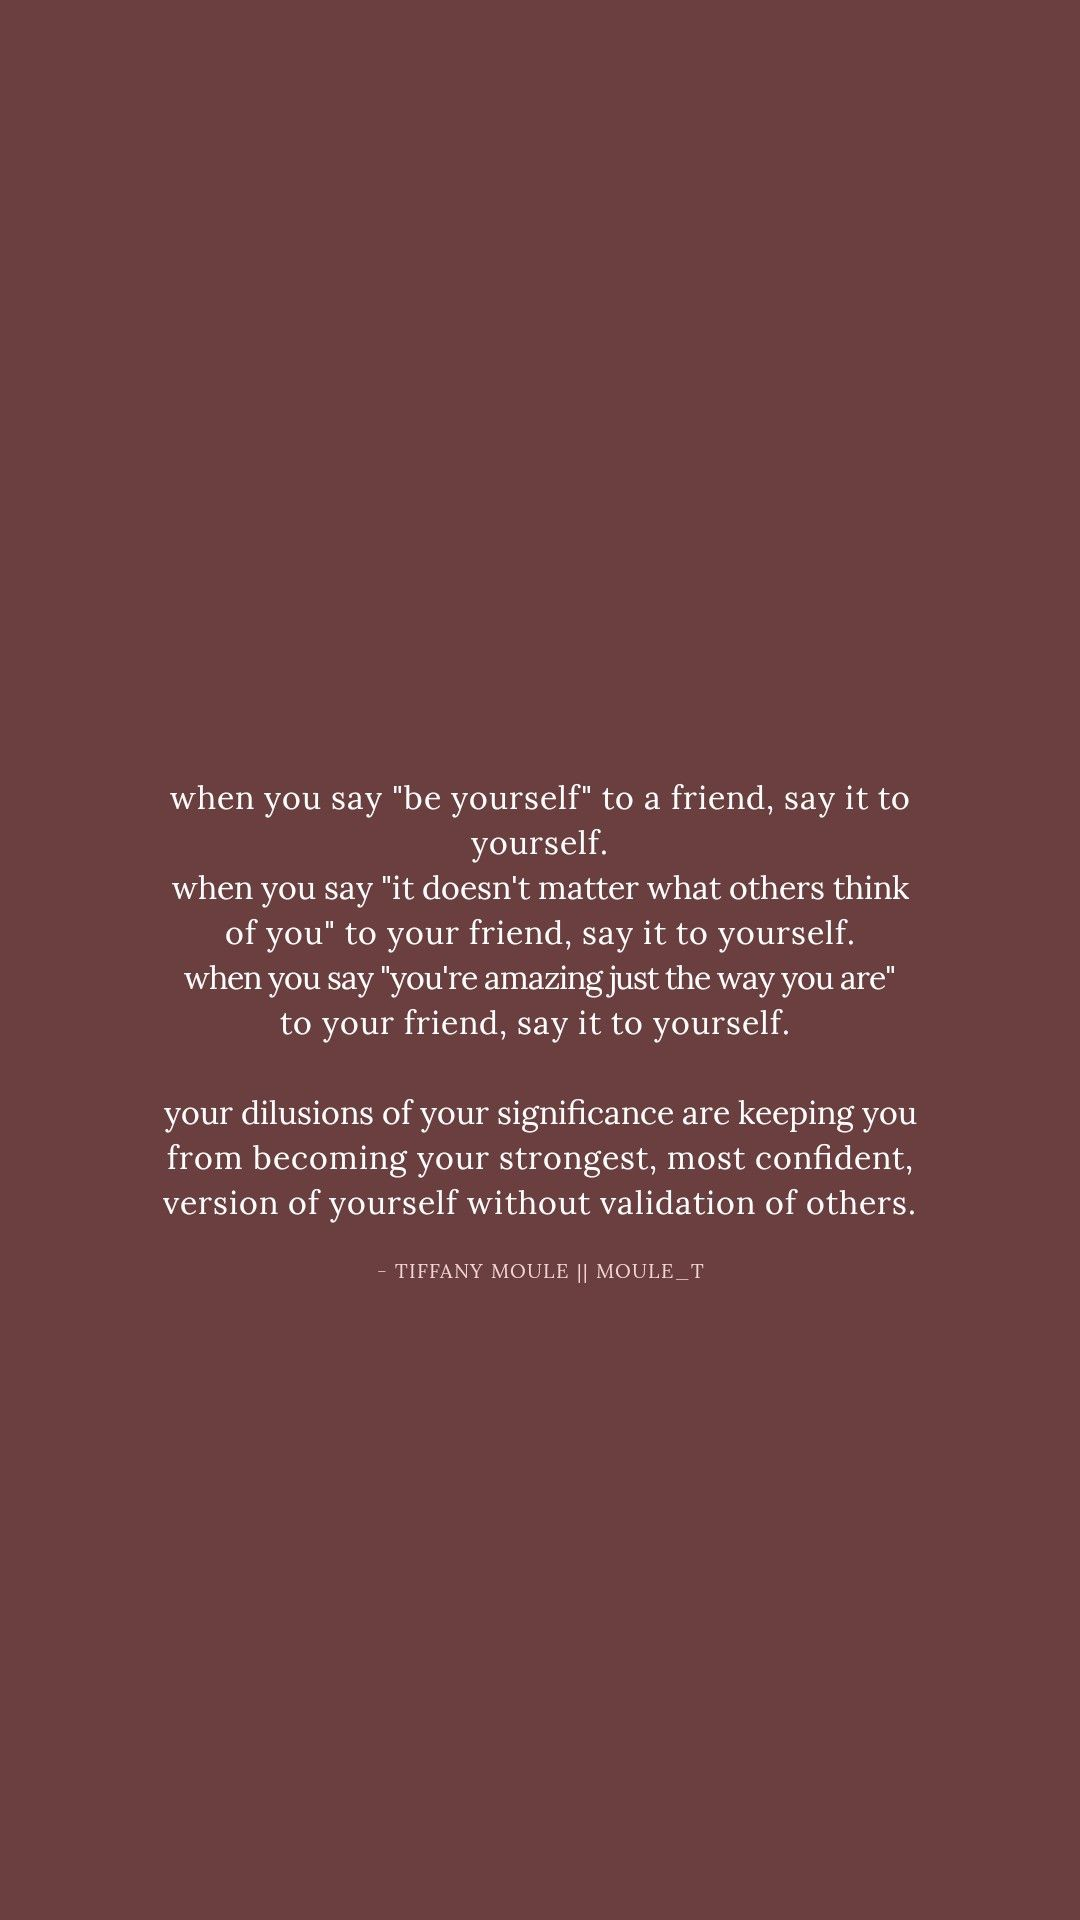 Self acceptance is a hard, but beautiful journey into self love & respect #selflove #selfcare